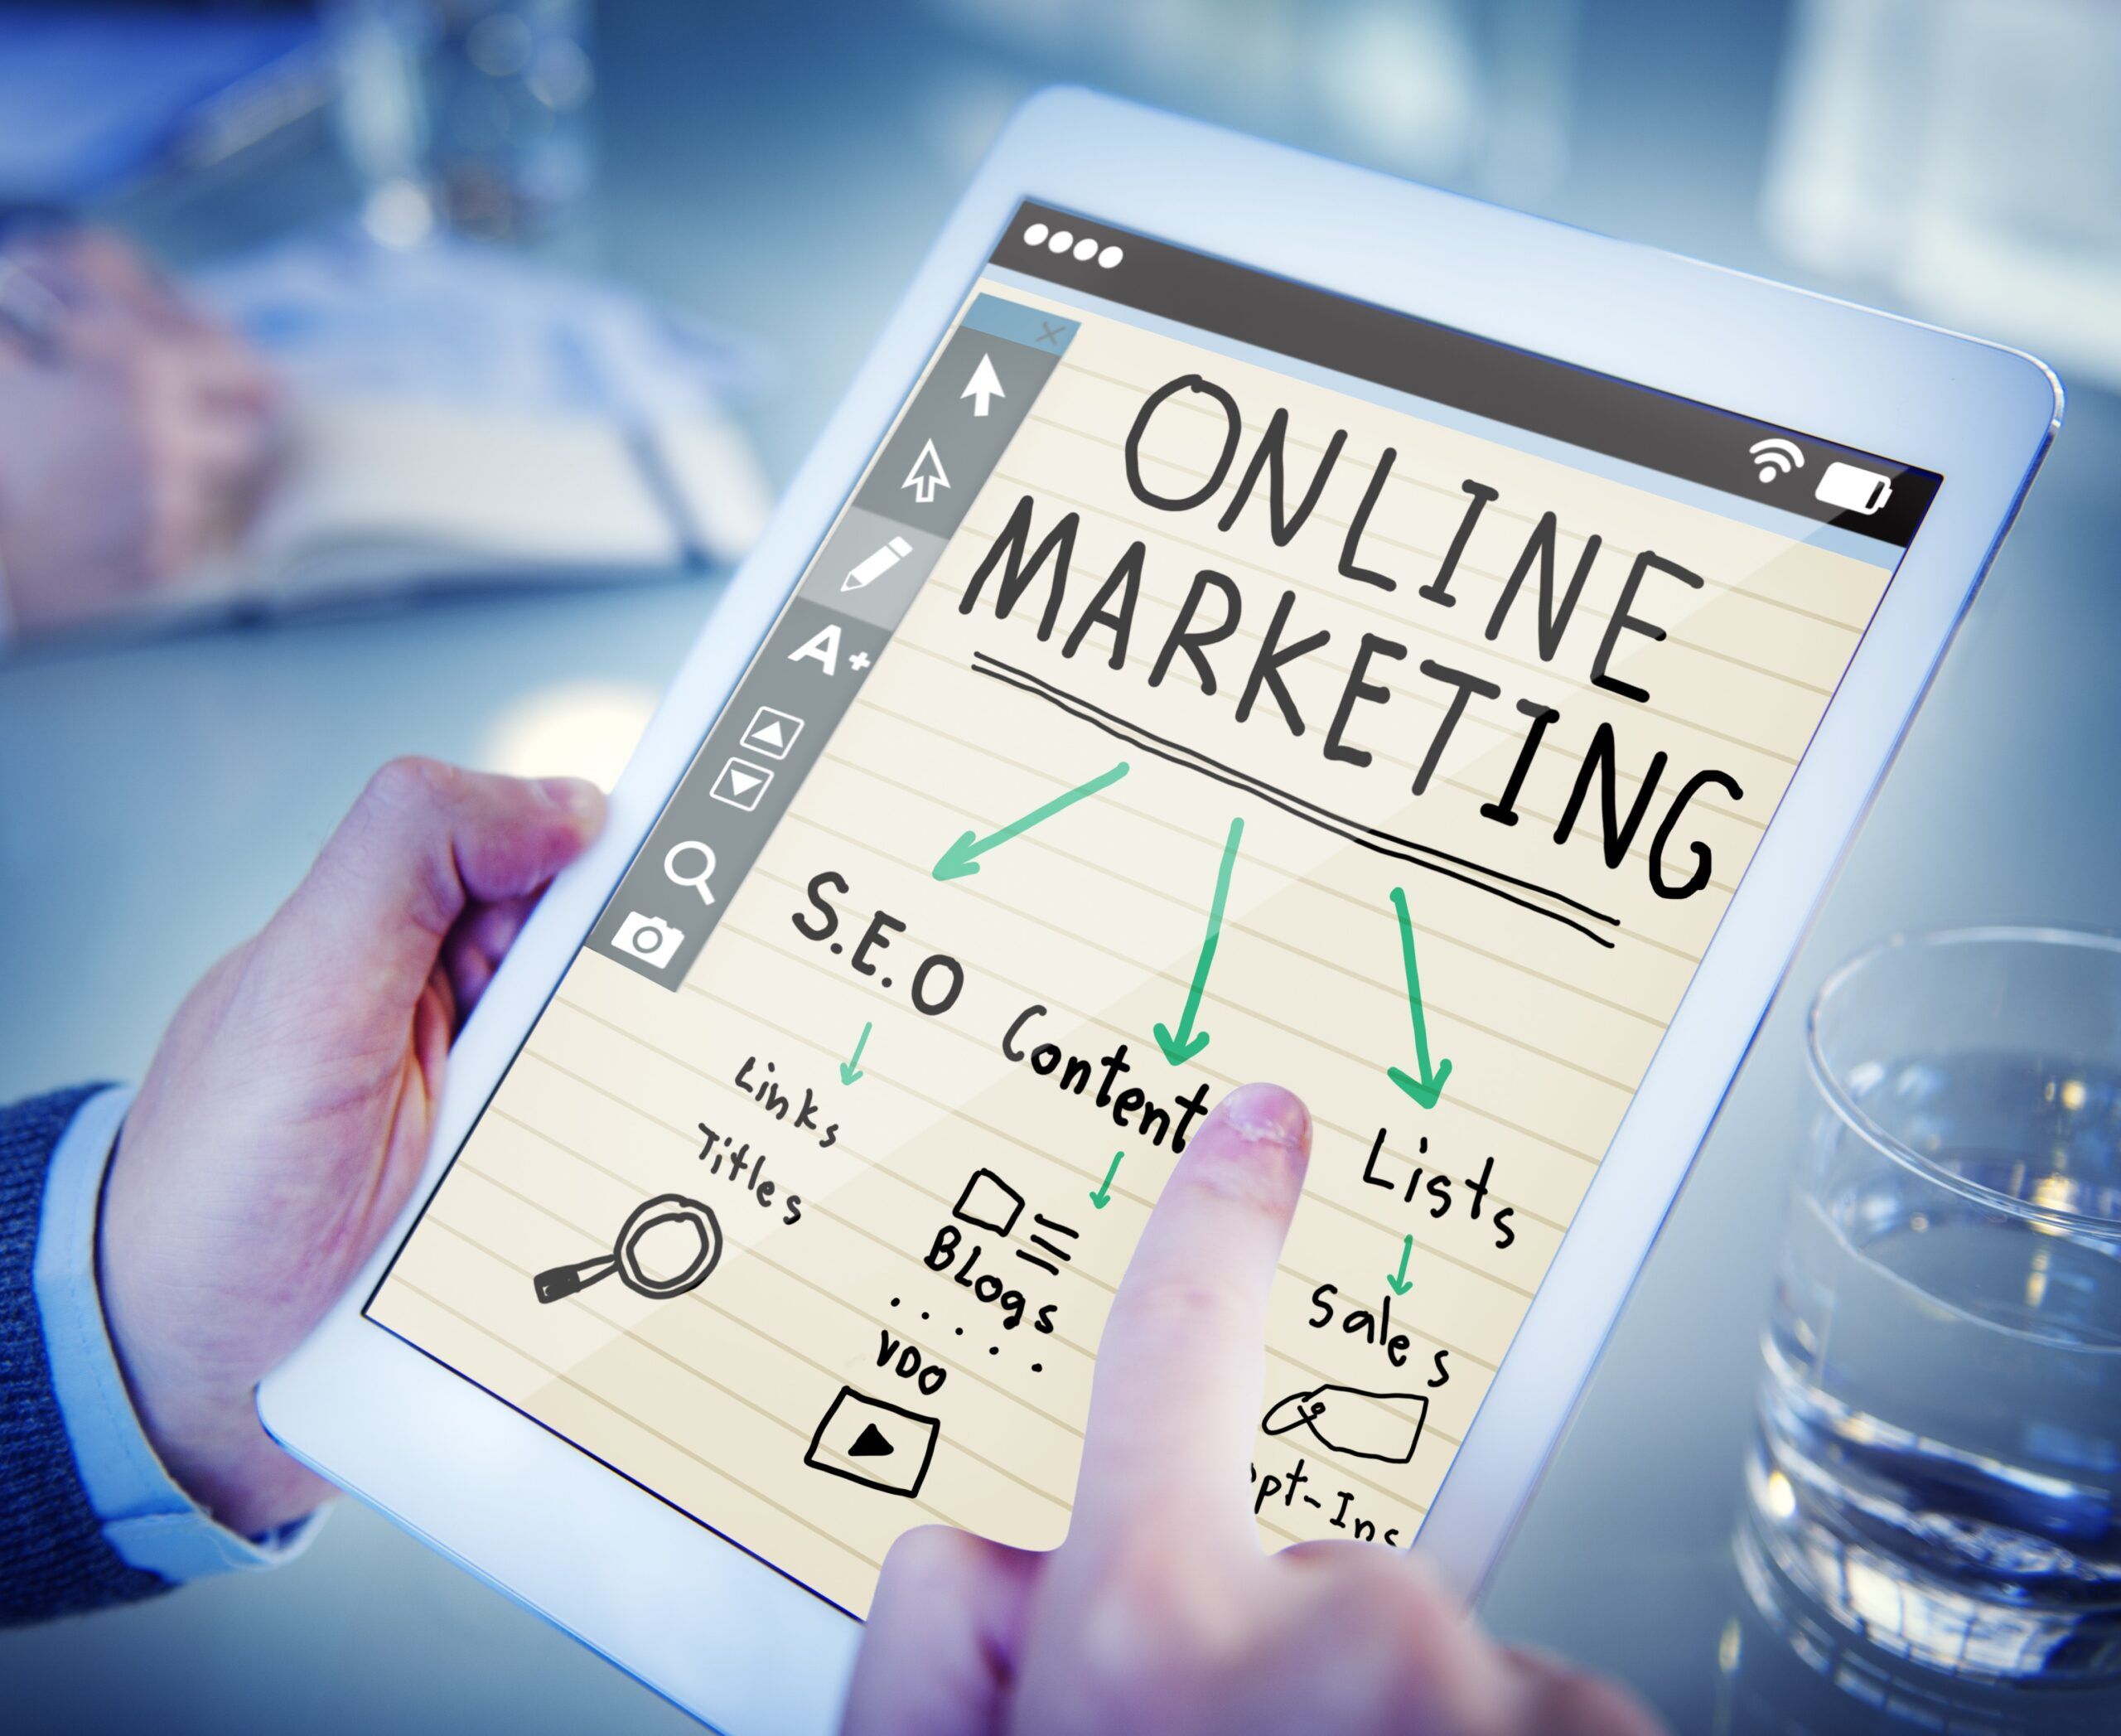 Online Marketing | Search Engine Marketing: Creating A Strategy To Hit Your Goals